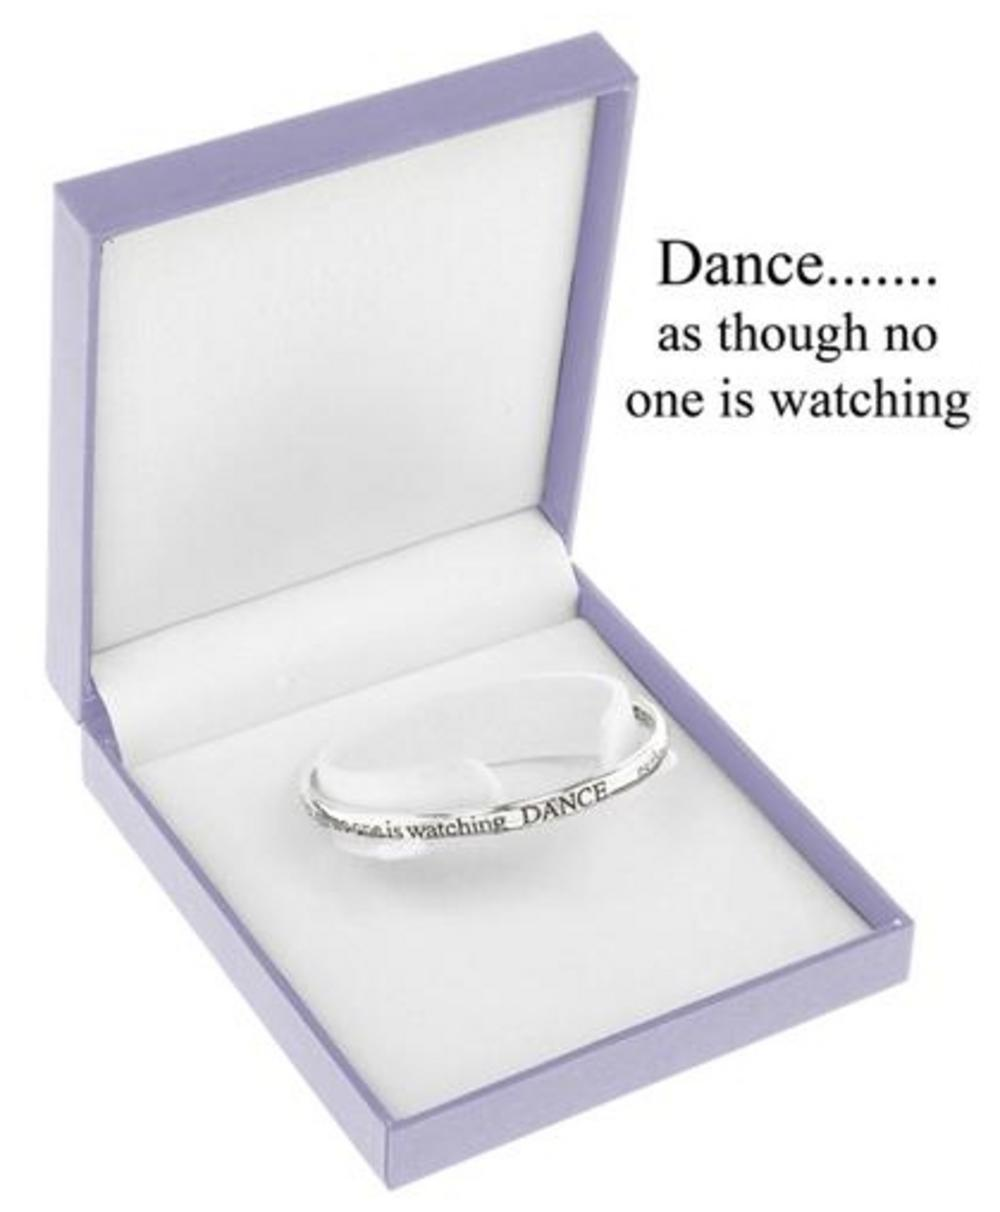 Equililbrium Silver Plated Bangle - Dance As Though No One Is Watching Gift Box